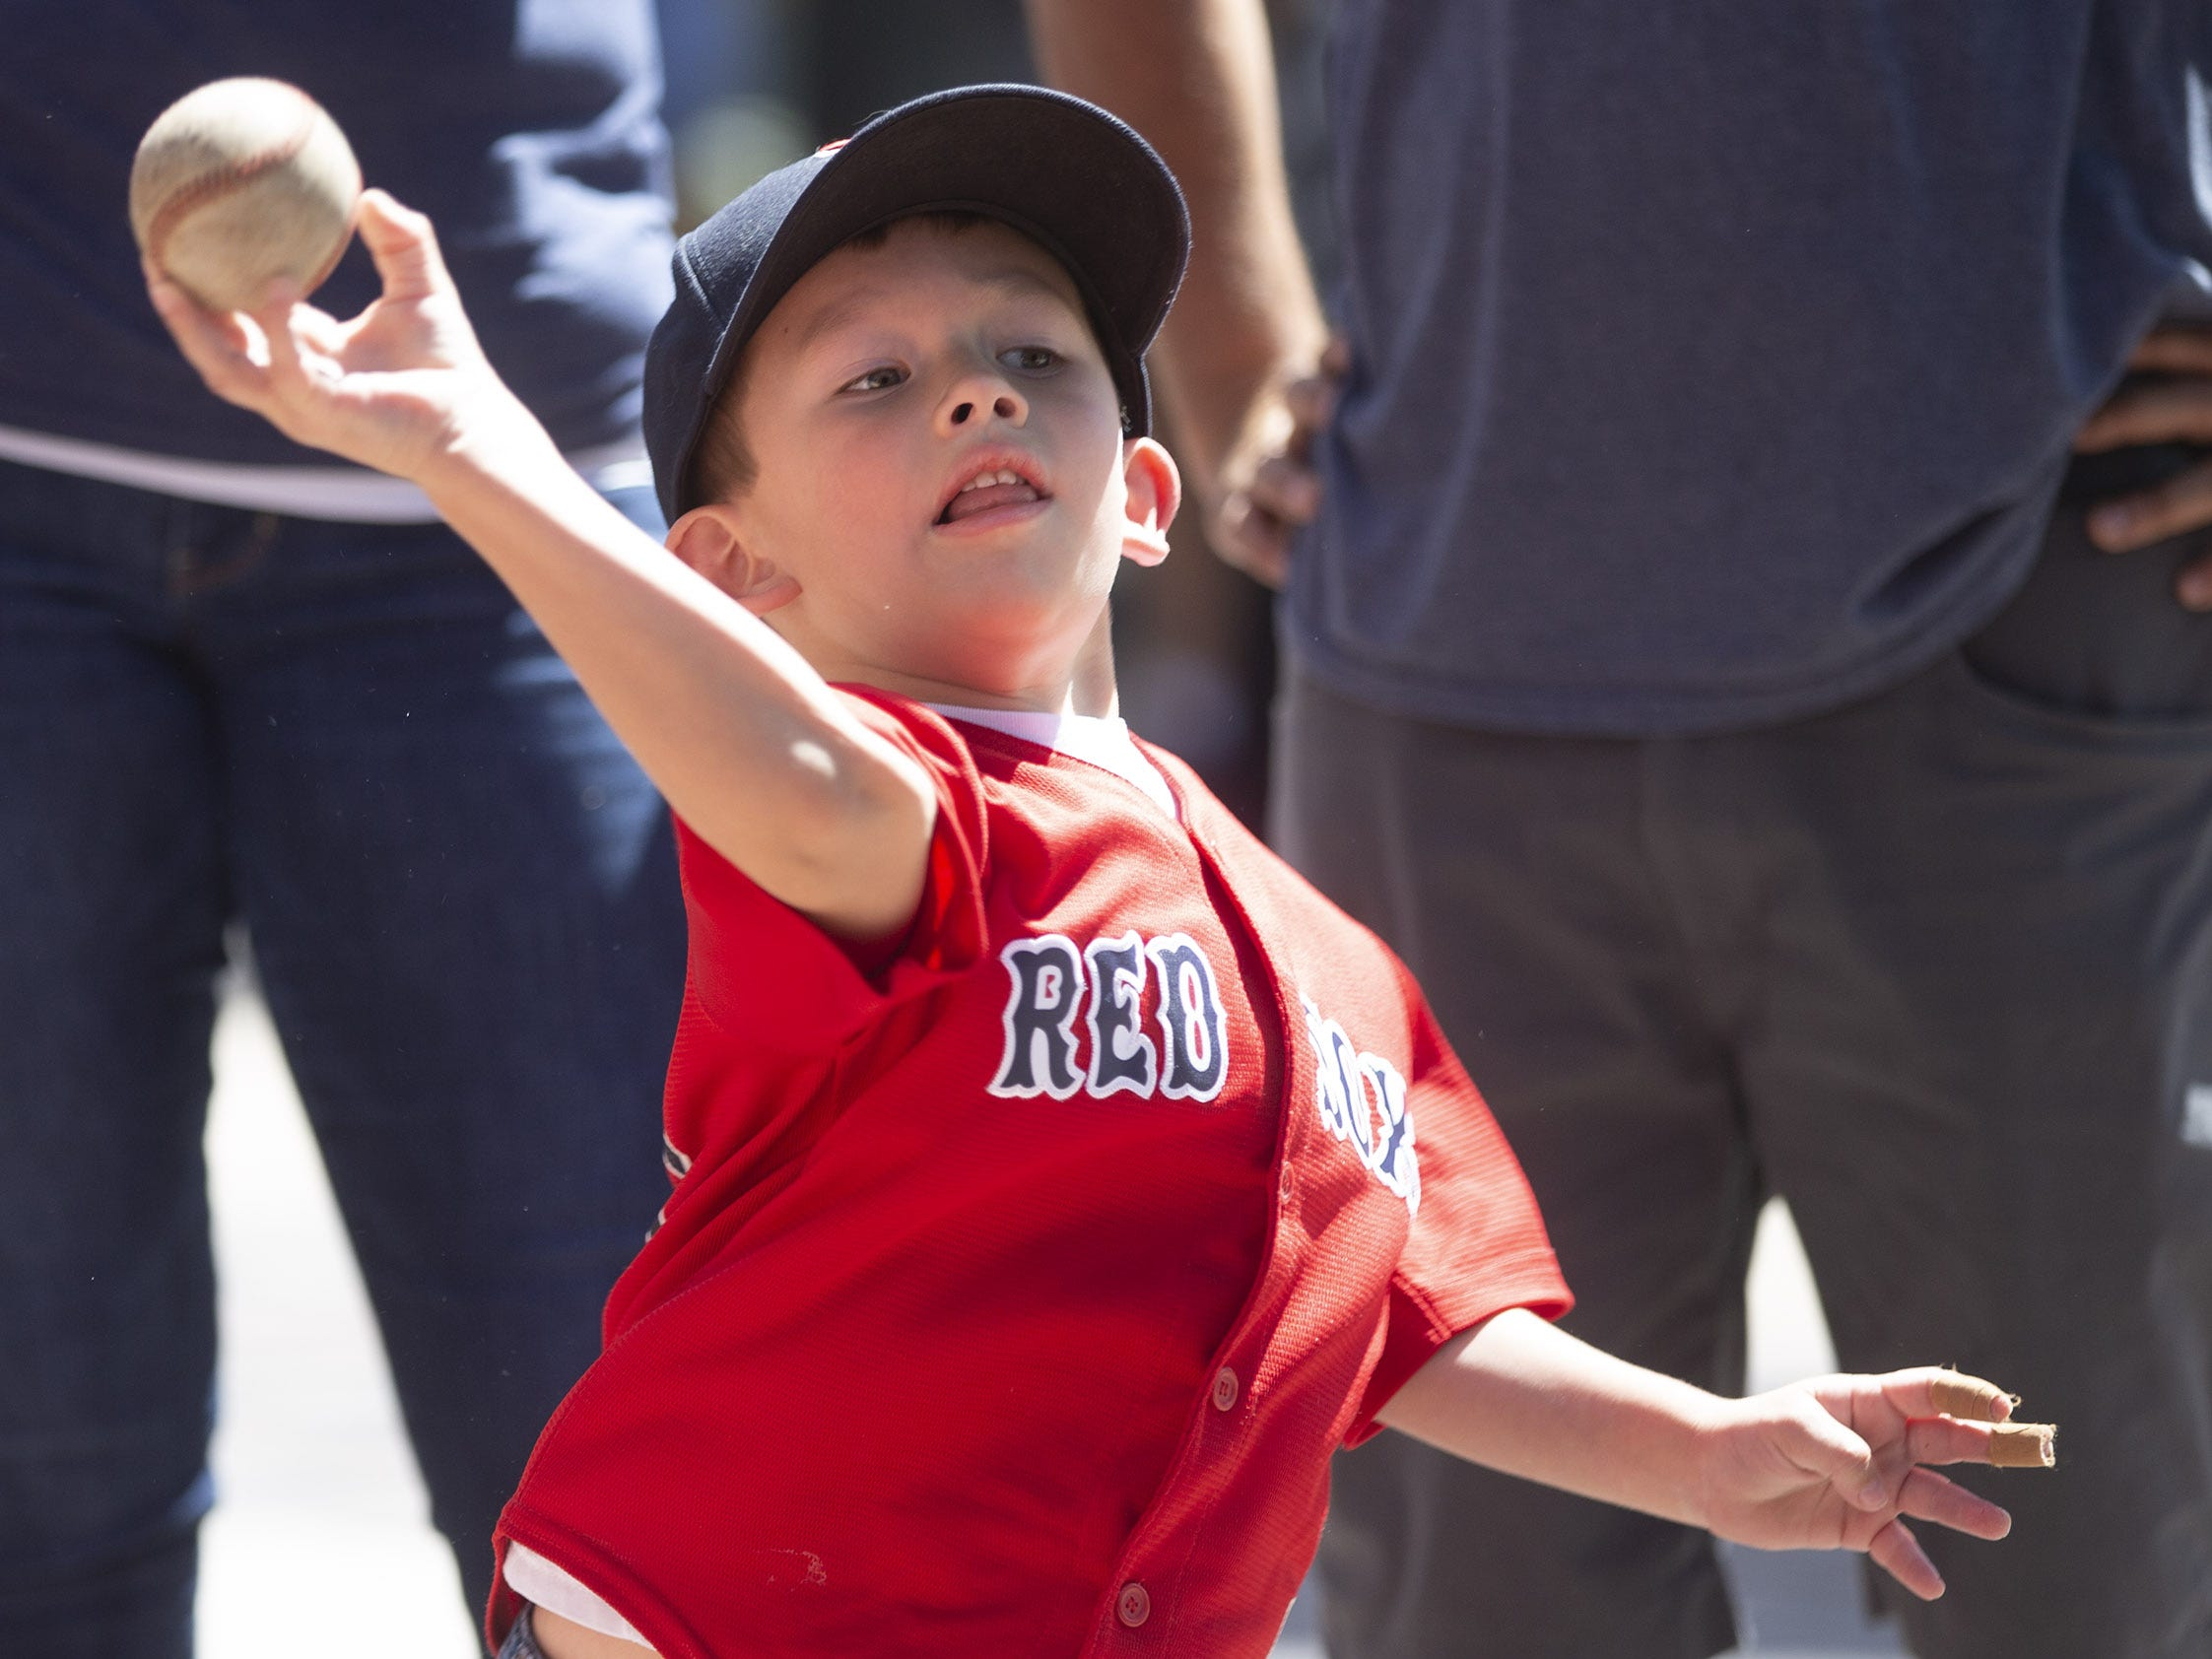 Vincent Riesgo Jr., 4, of Tucson, throws a ball during Opening Day street festival at Chase Field in Phoenix on April 5.